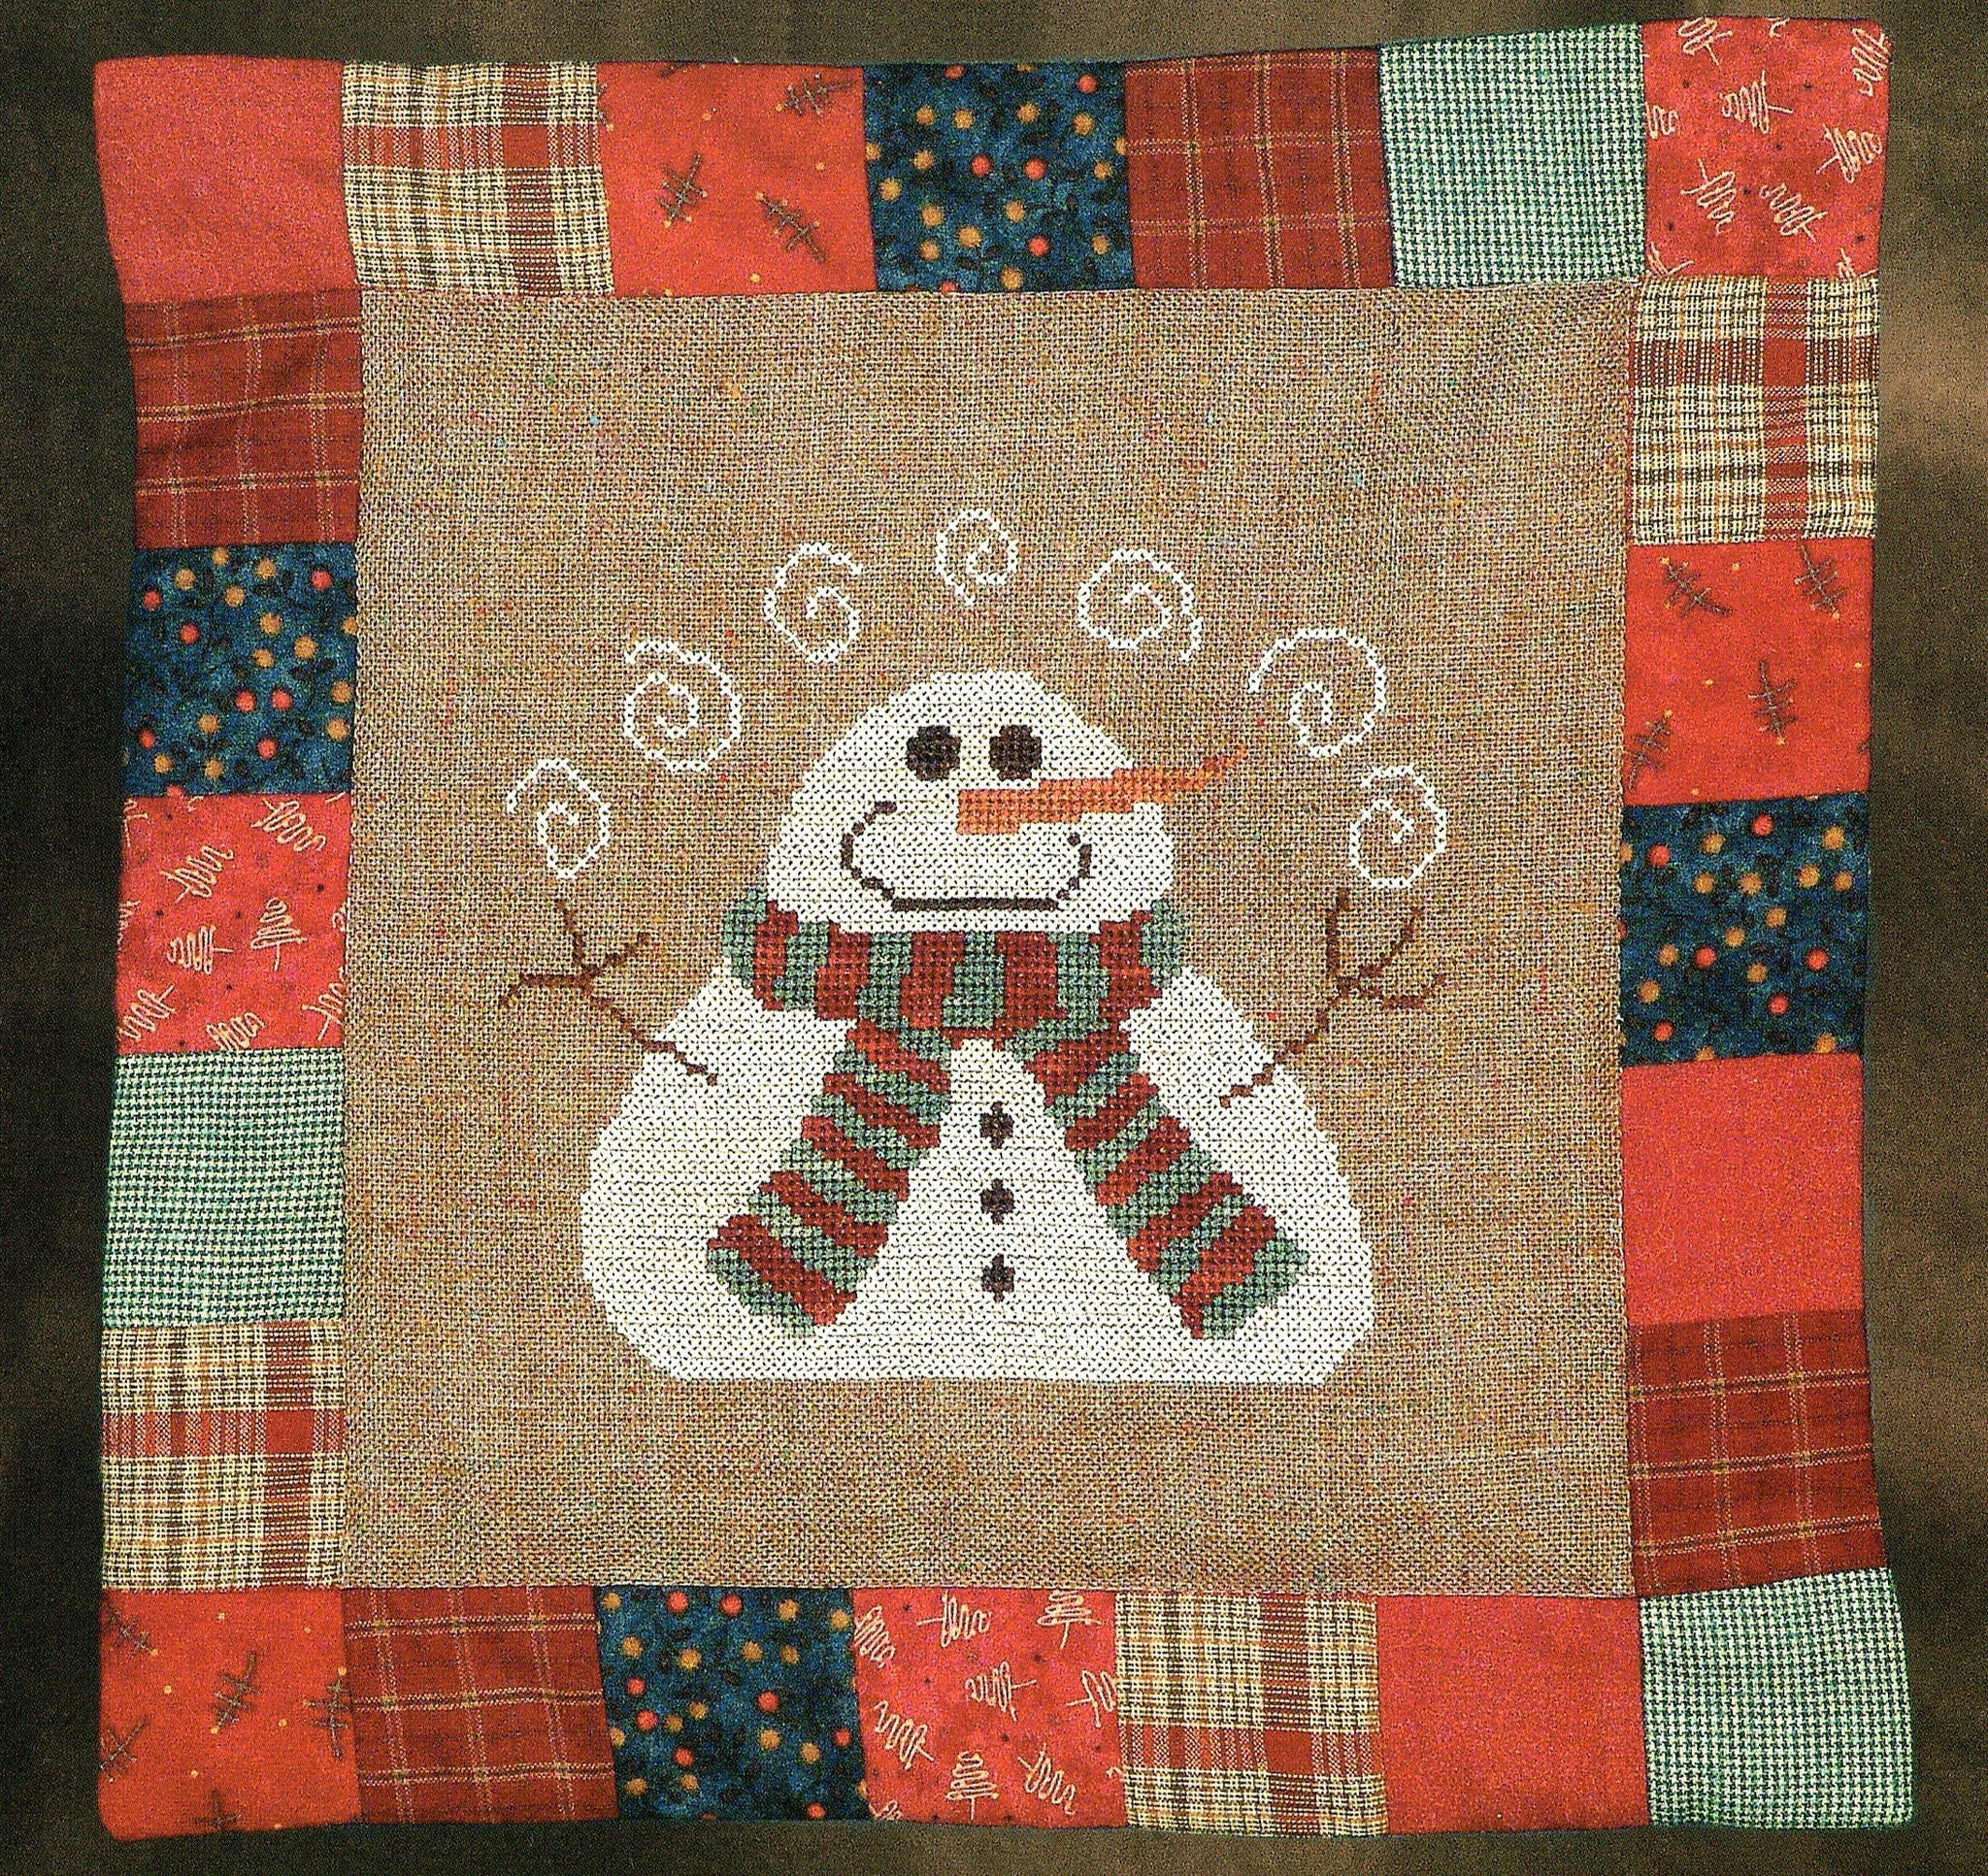 Snow Juggle - Cross Stitch Pattern